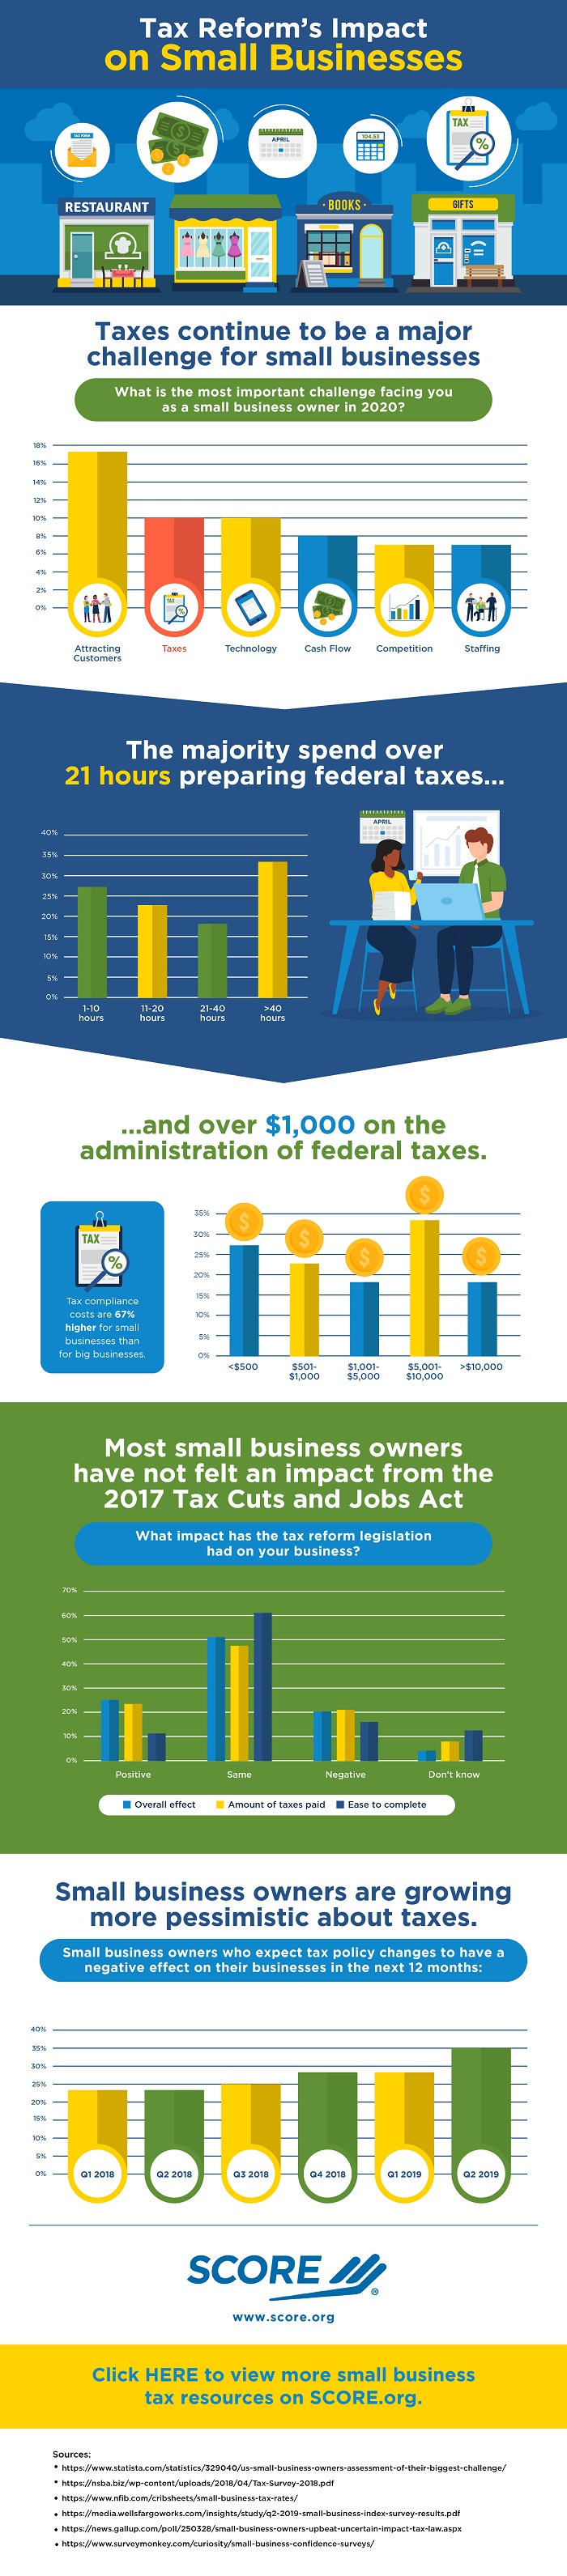 Infographic: Tax Reform's Impact on Small Businesses